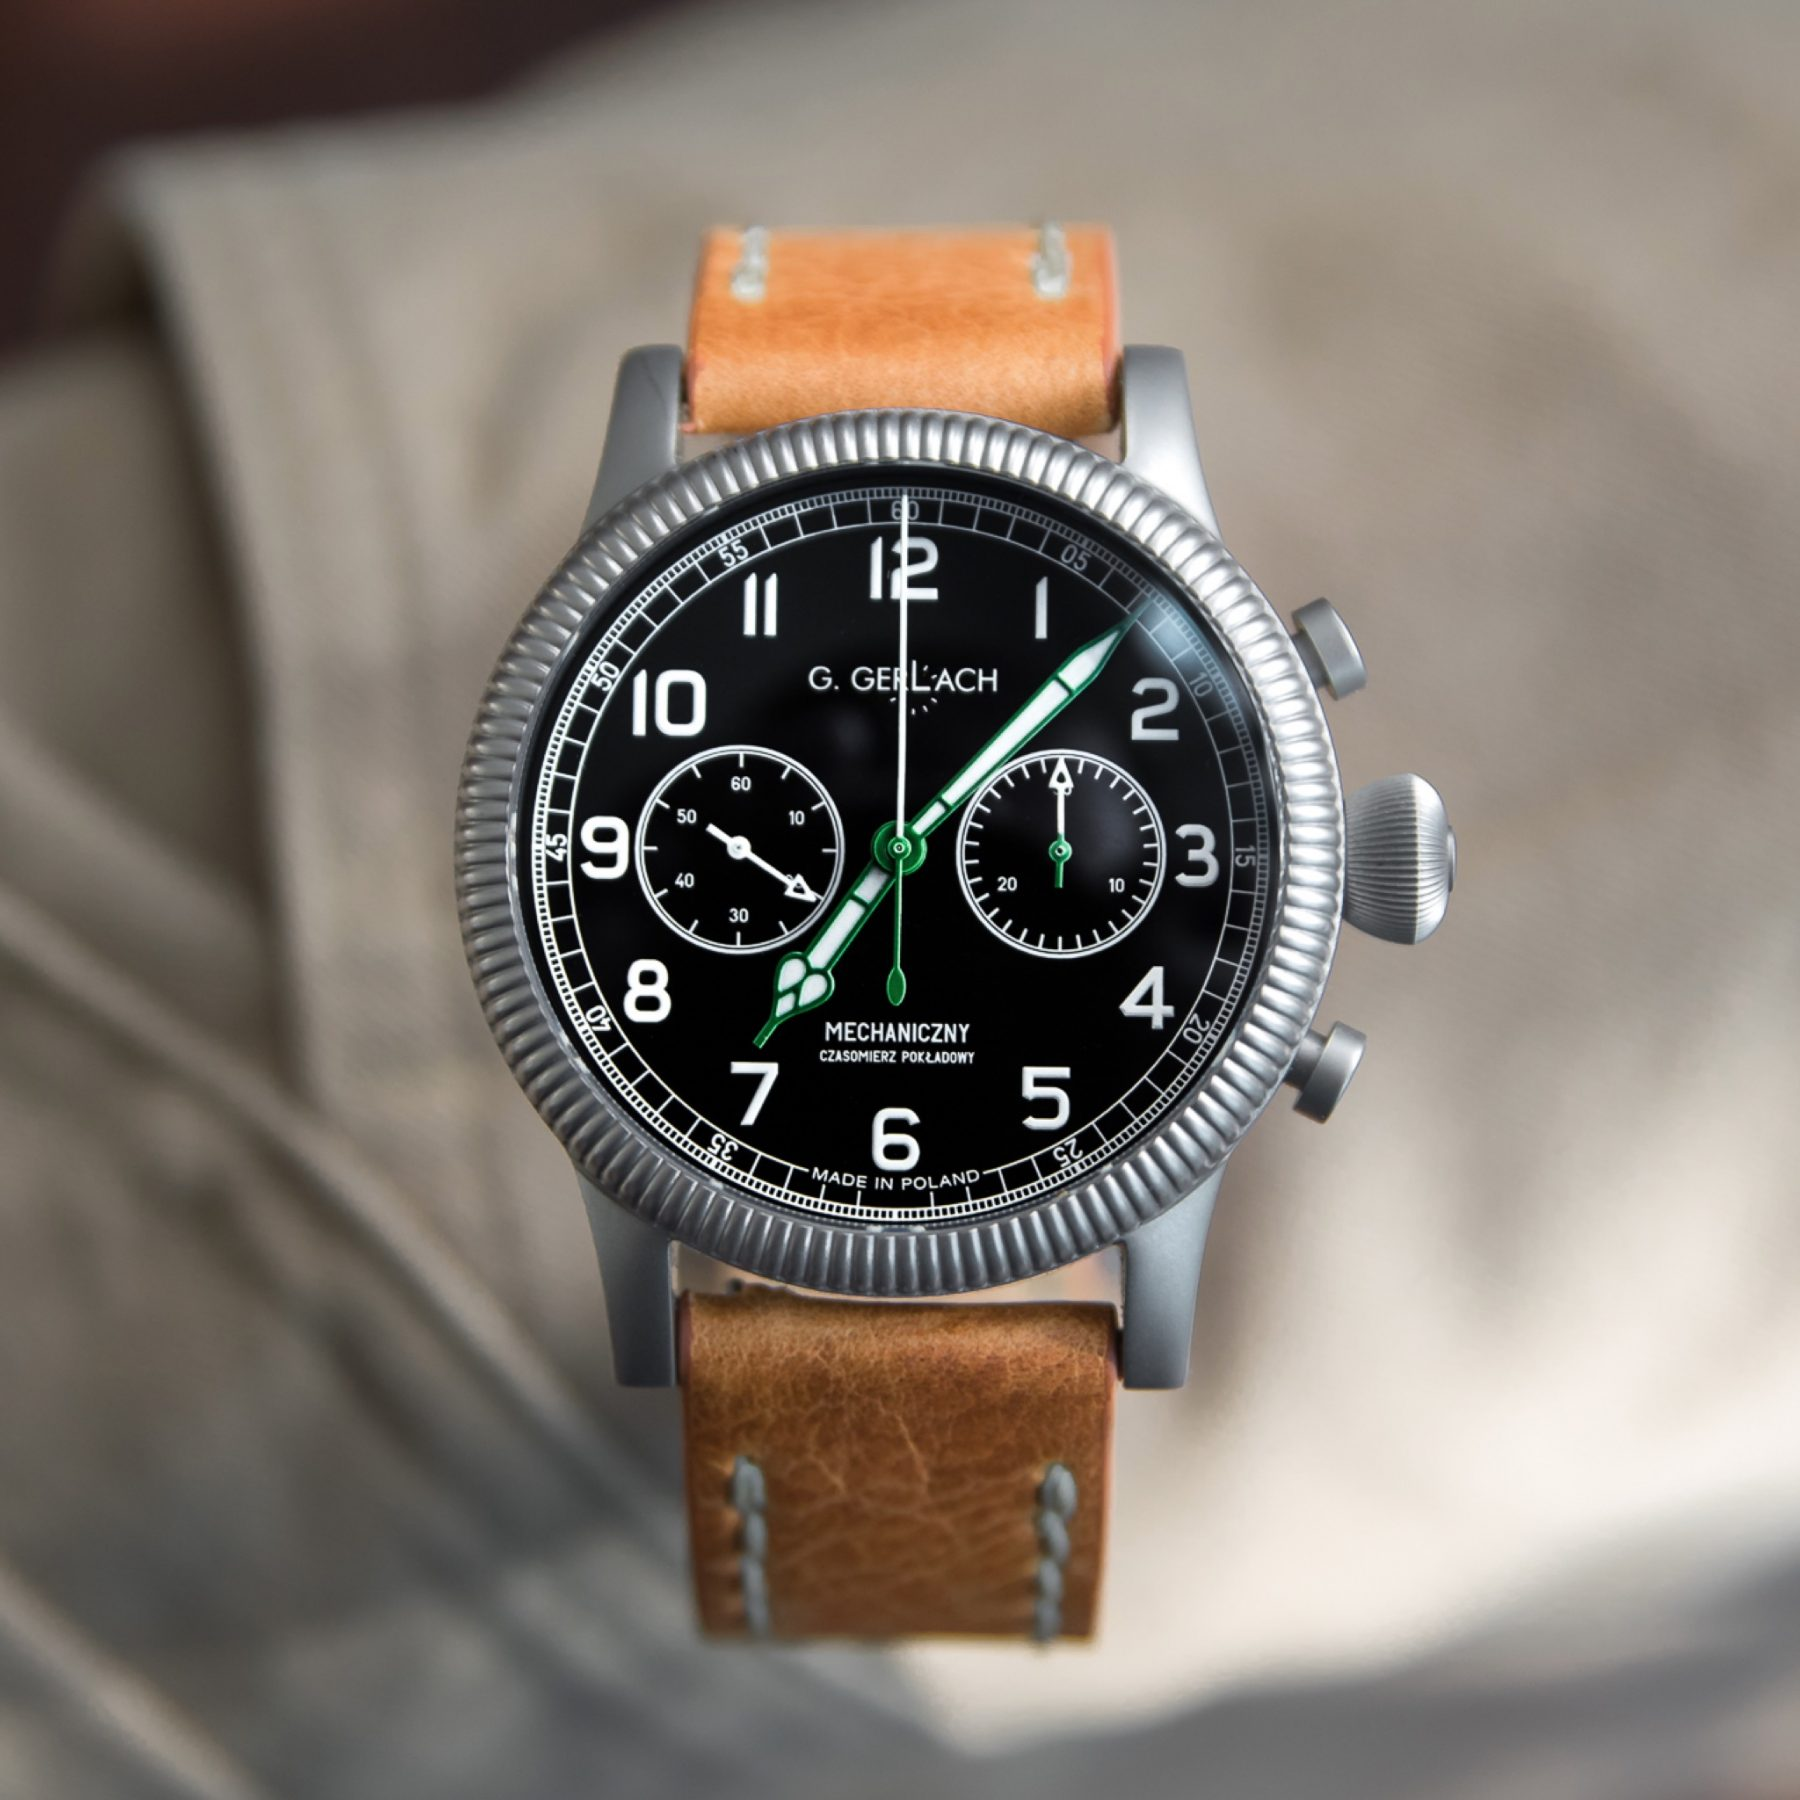 watches help in the todd guide strap out pick x design watch nato timepiece mod this snyder vintage style stand military week and feature inspired a timex of